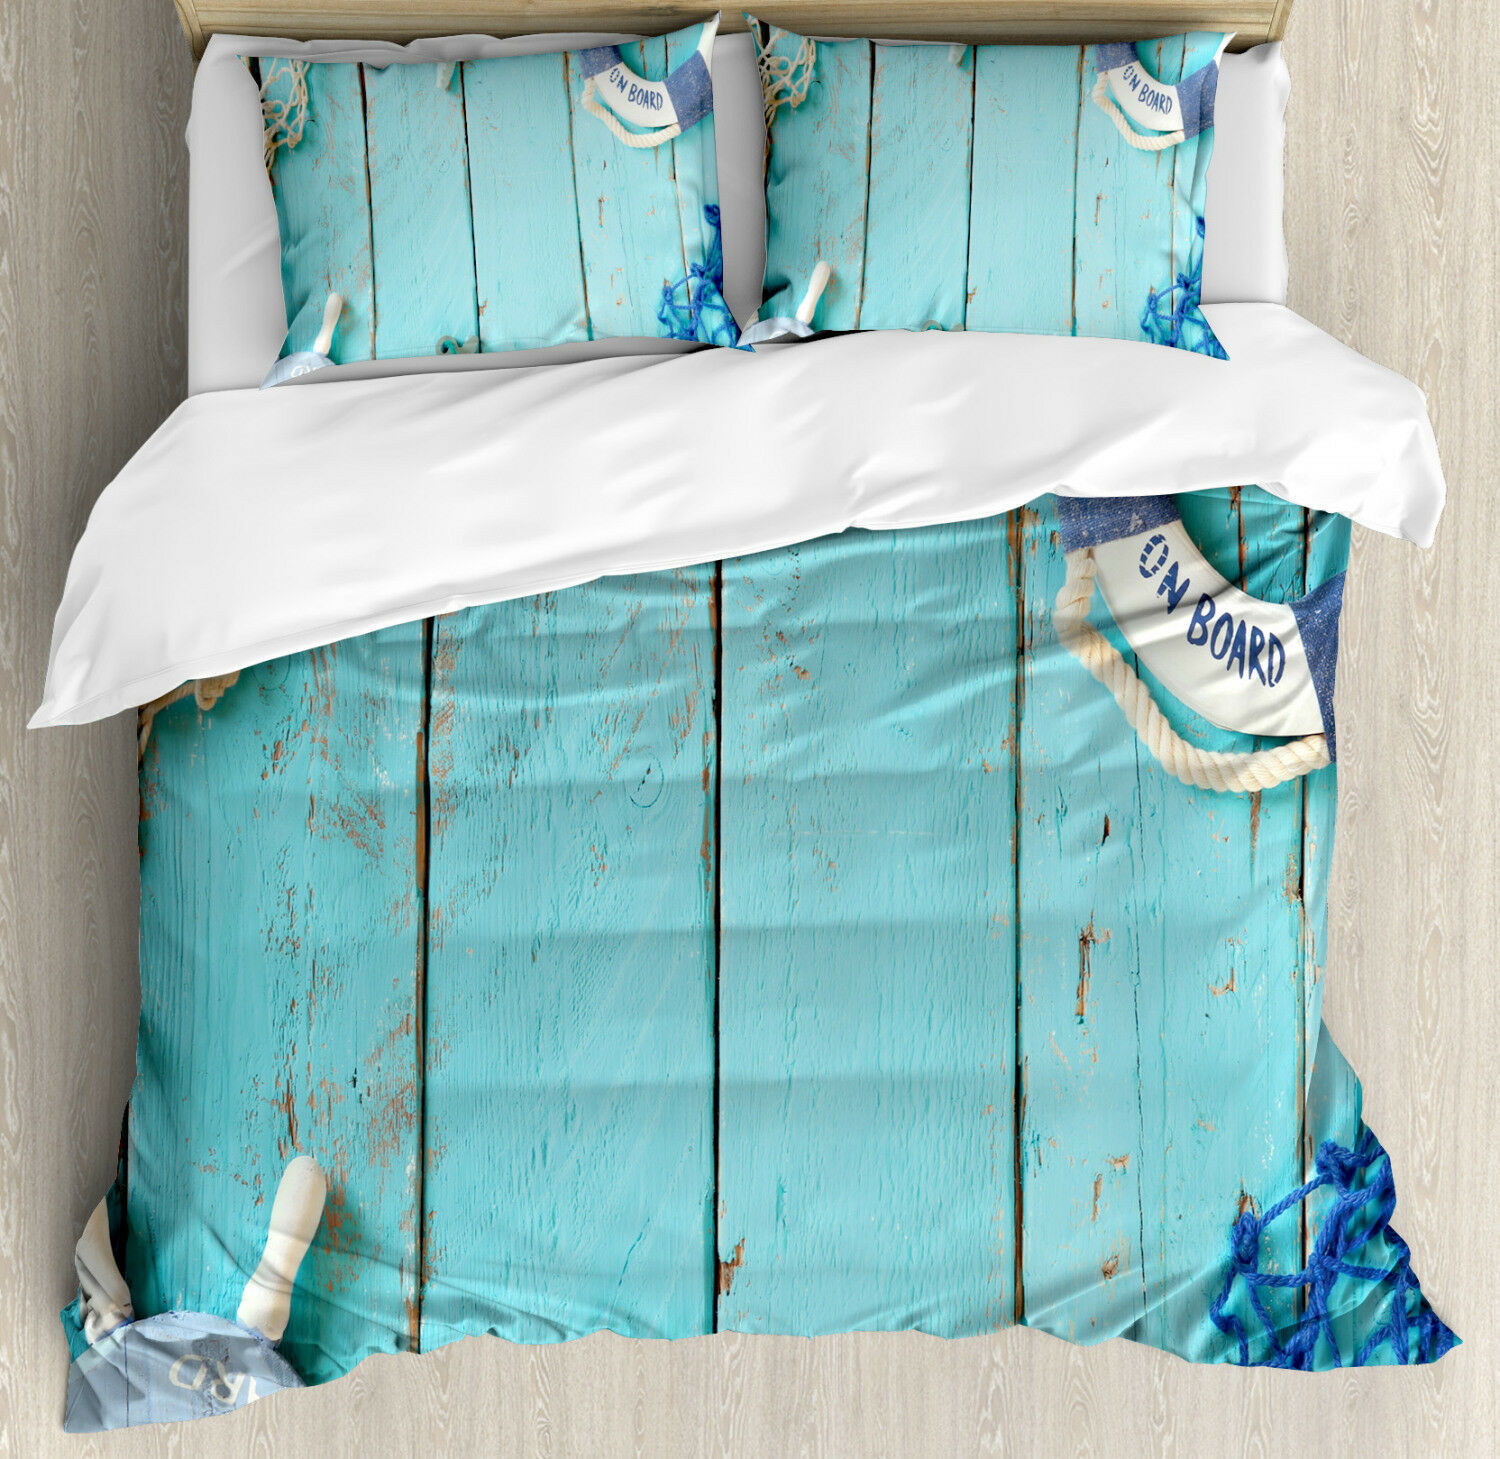 Vintage Duvet Cover Set with Pillow Shams Nautical Ocean Scenery Print